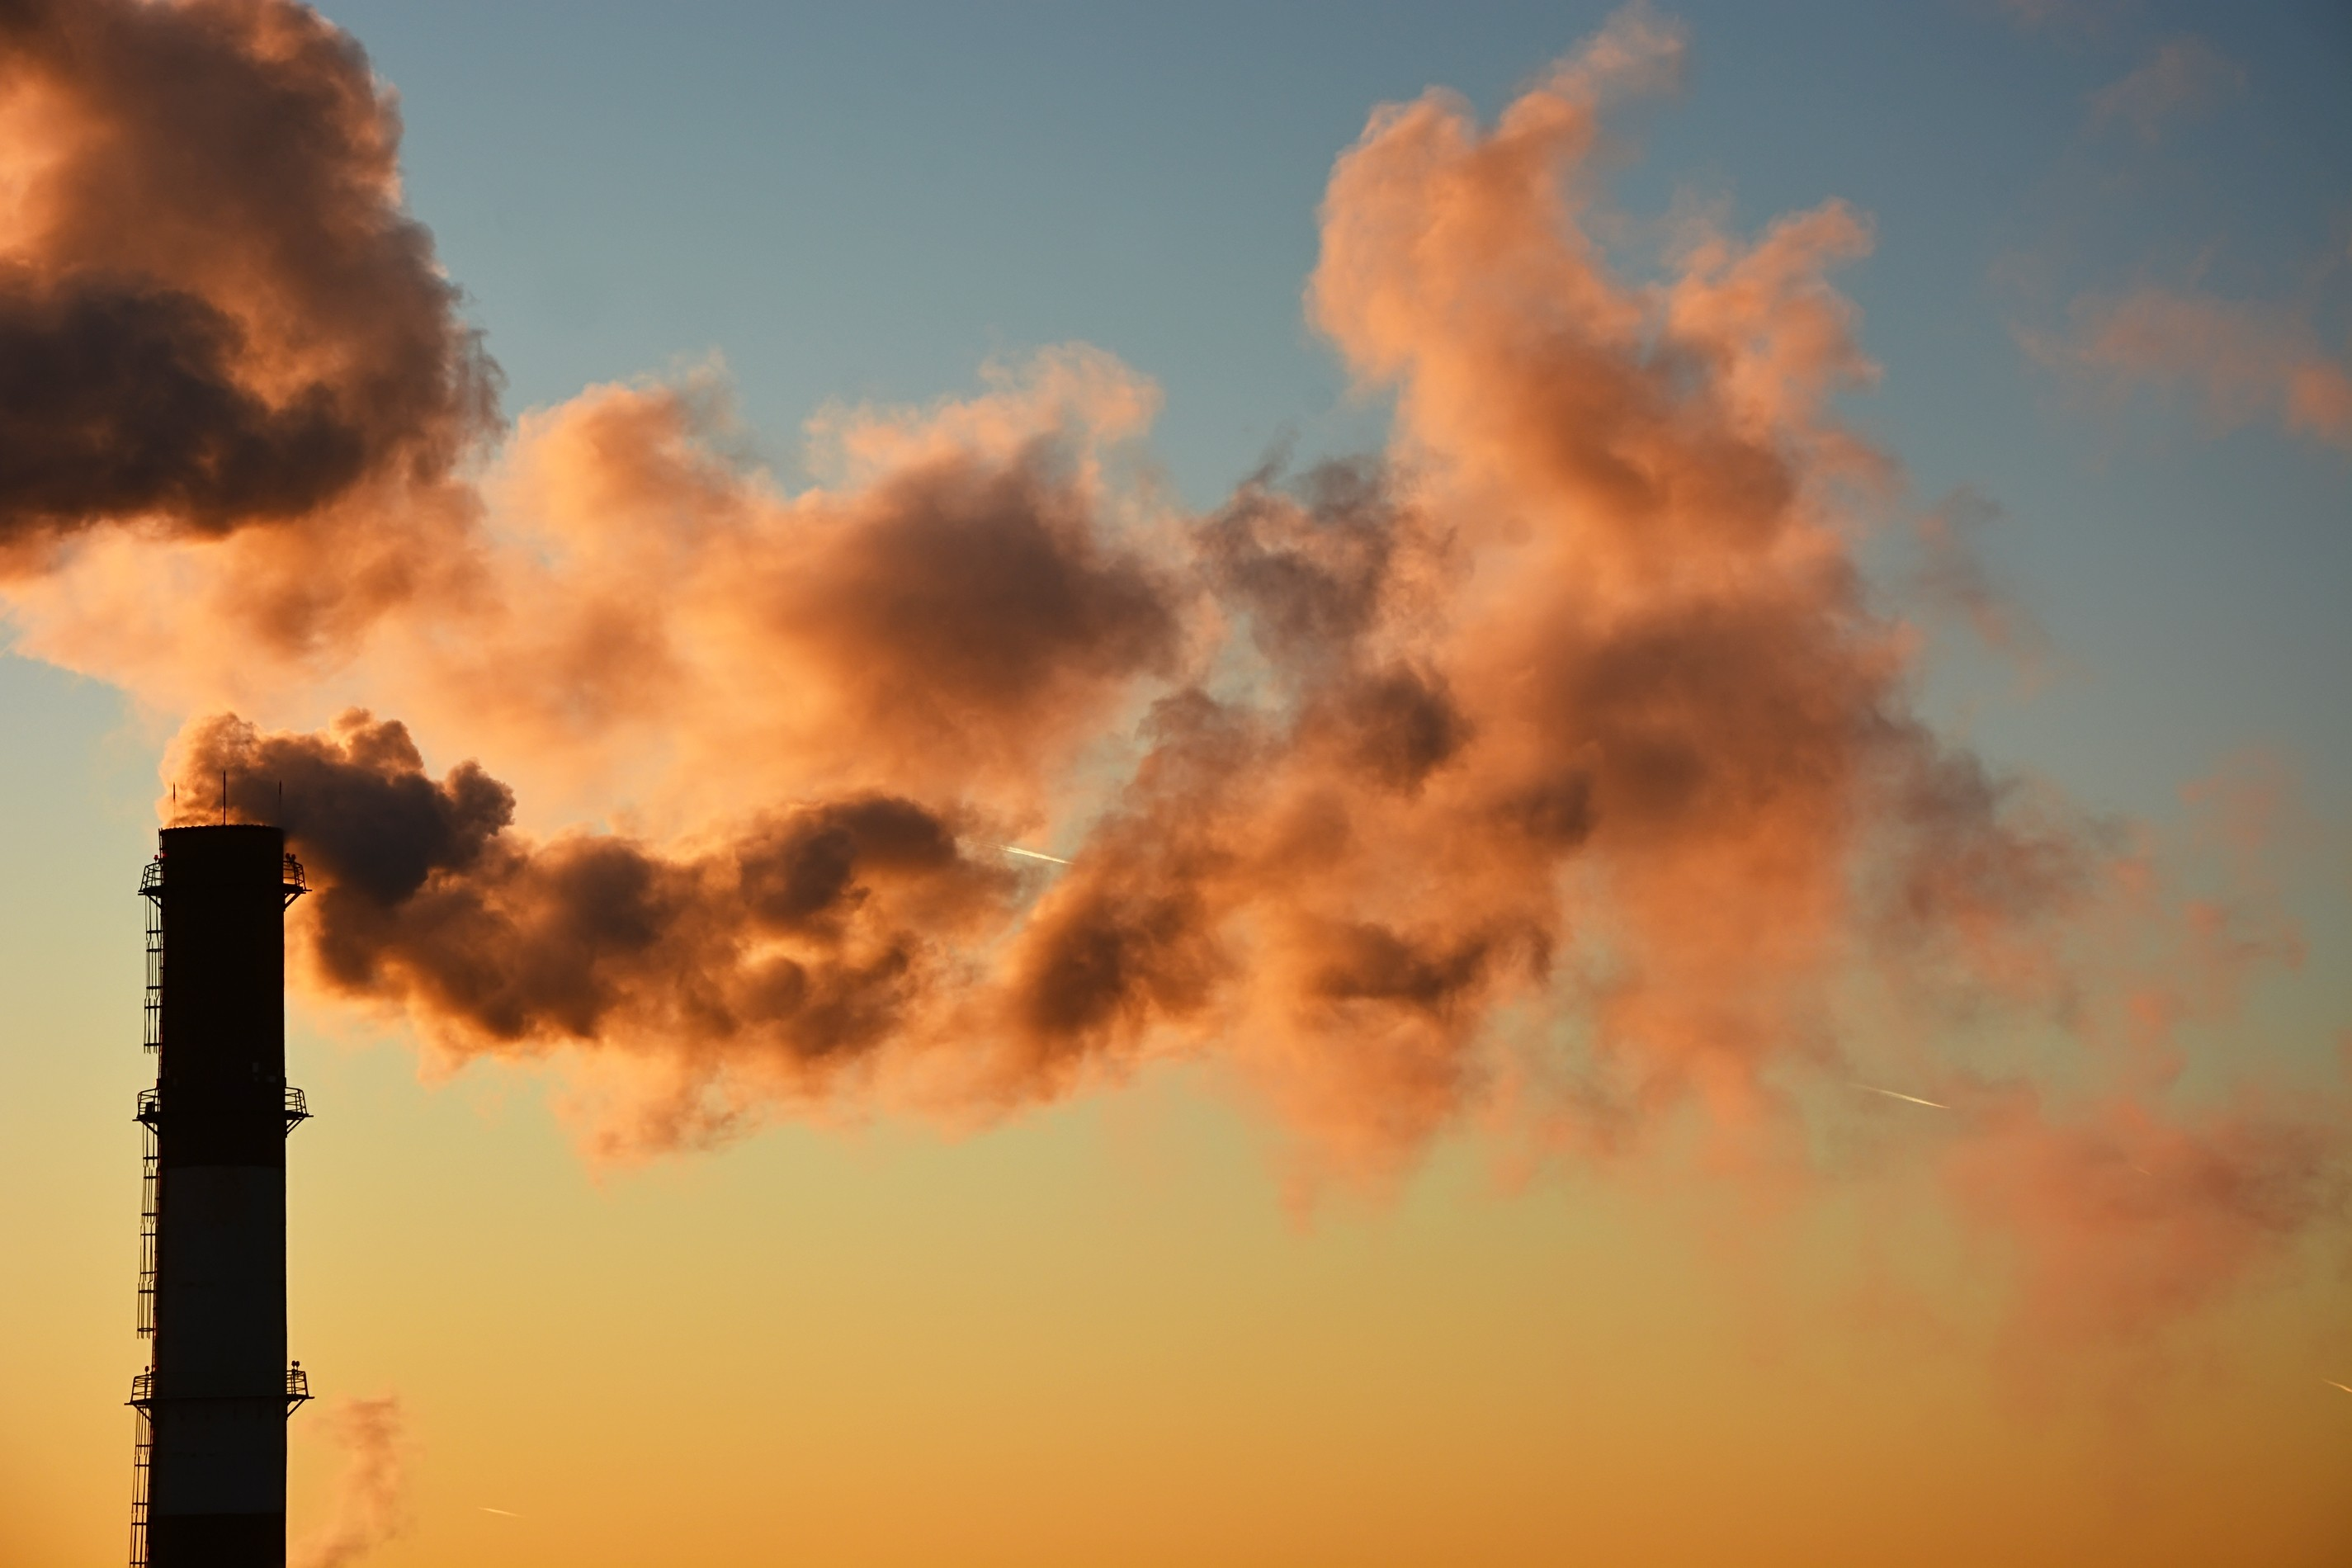 Texas House Votes To Cut 20 Million From Air Quality